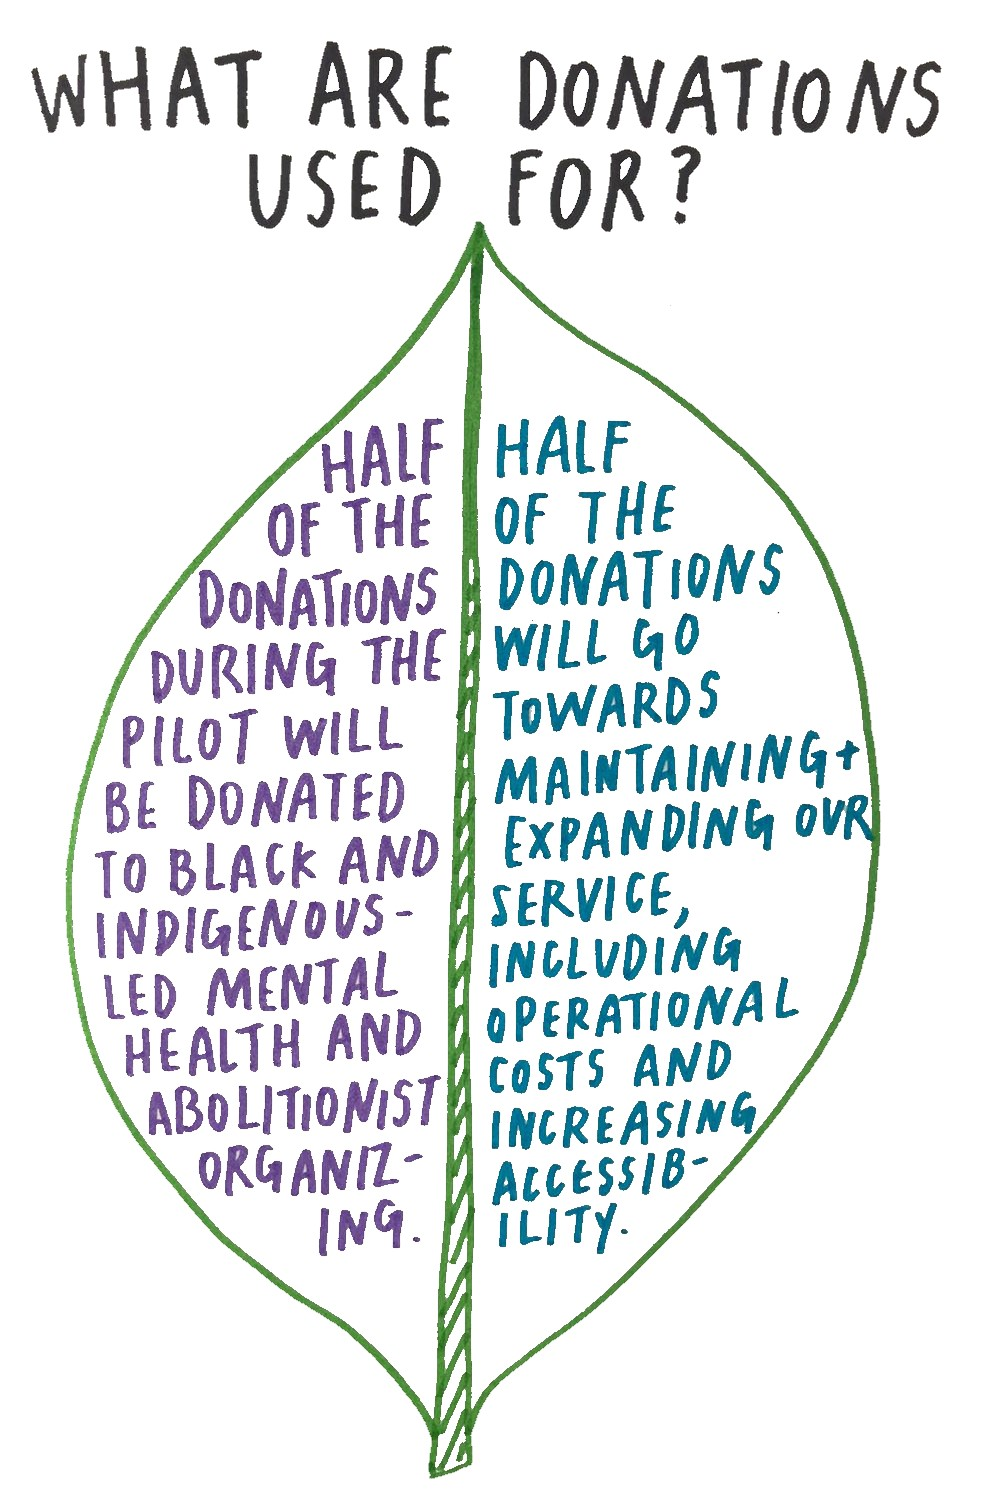 An image of a leaf that represents the total donations we receive during the pilot.